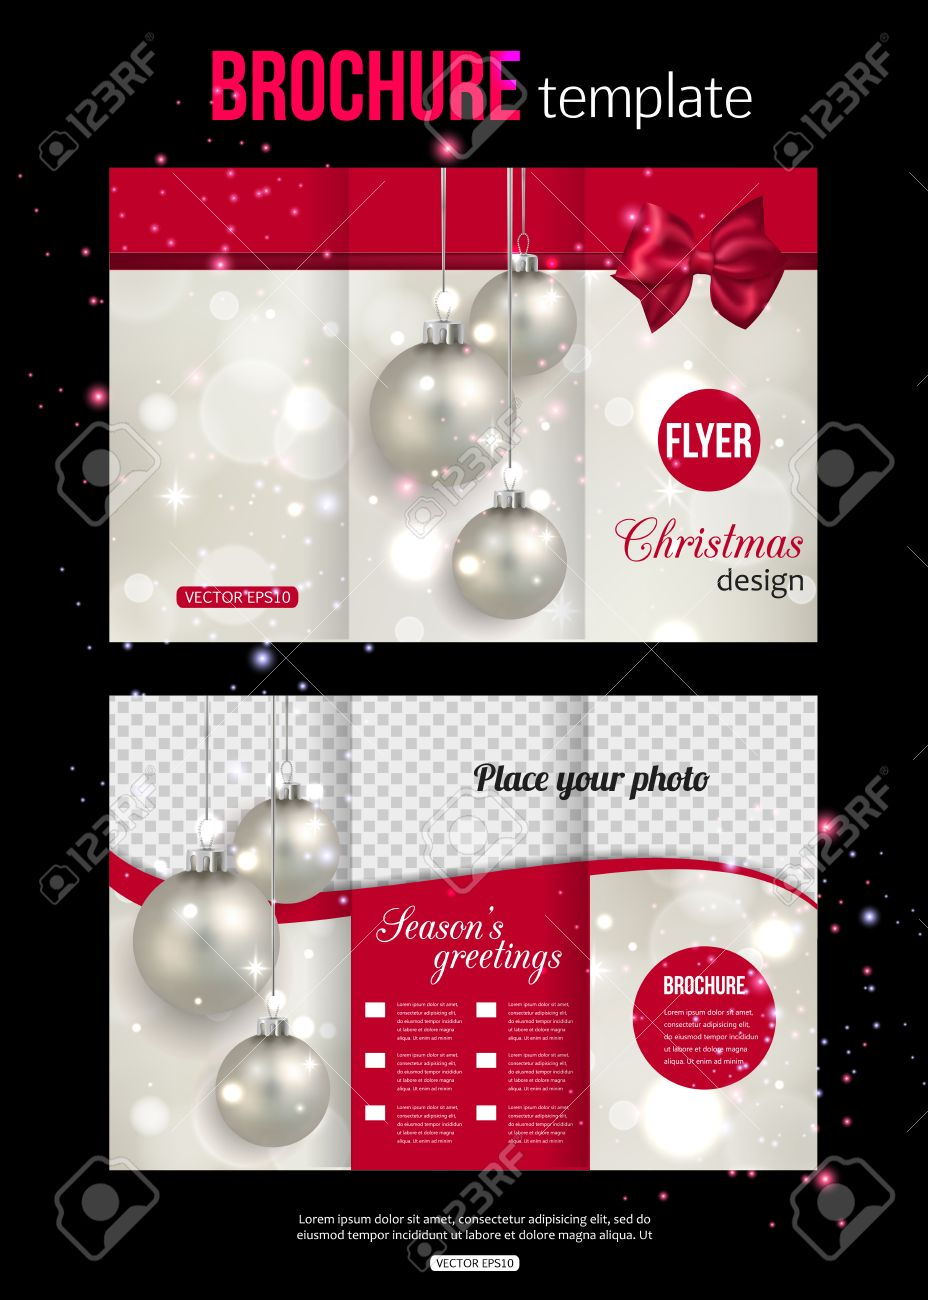 Christmas Trifold Brochure Template. Abstract Flyer Design With ...